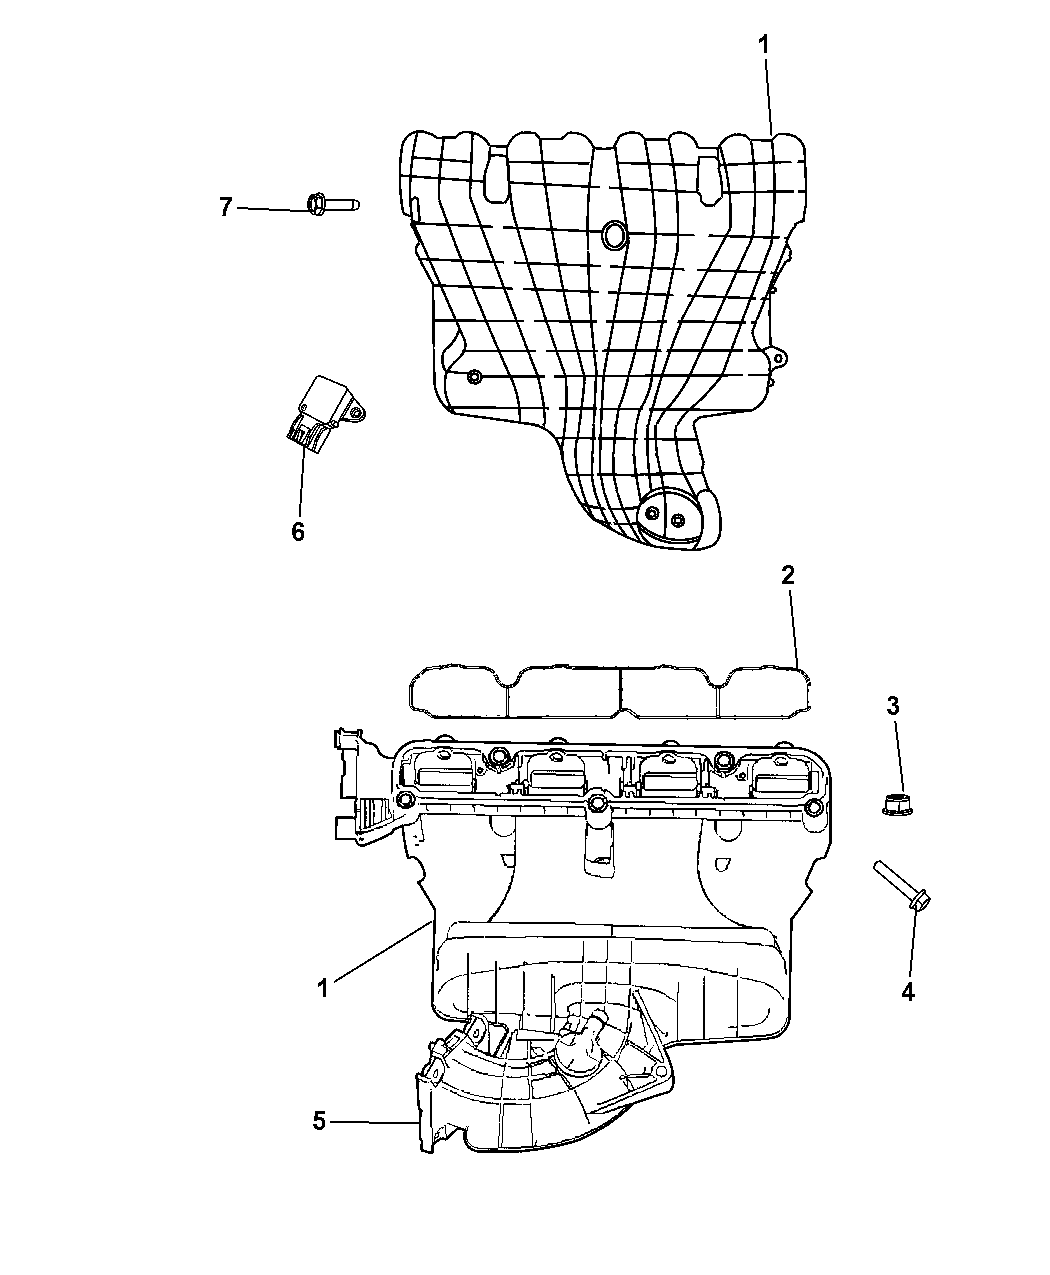 2011 chrysler 200 intake manifold mopar parts giant 2011 mazda cx7 engine diagram 2011 chrysler 200 intake manifold thumbnail 1